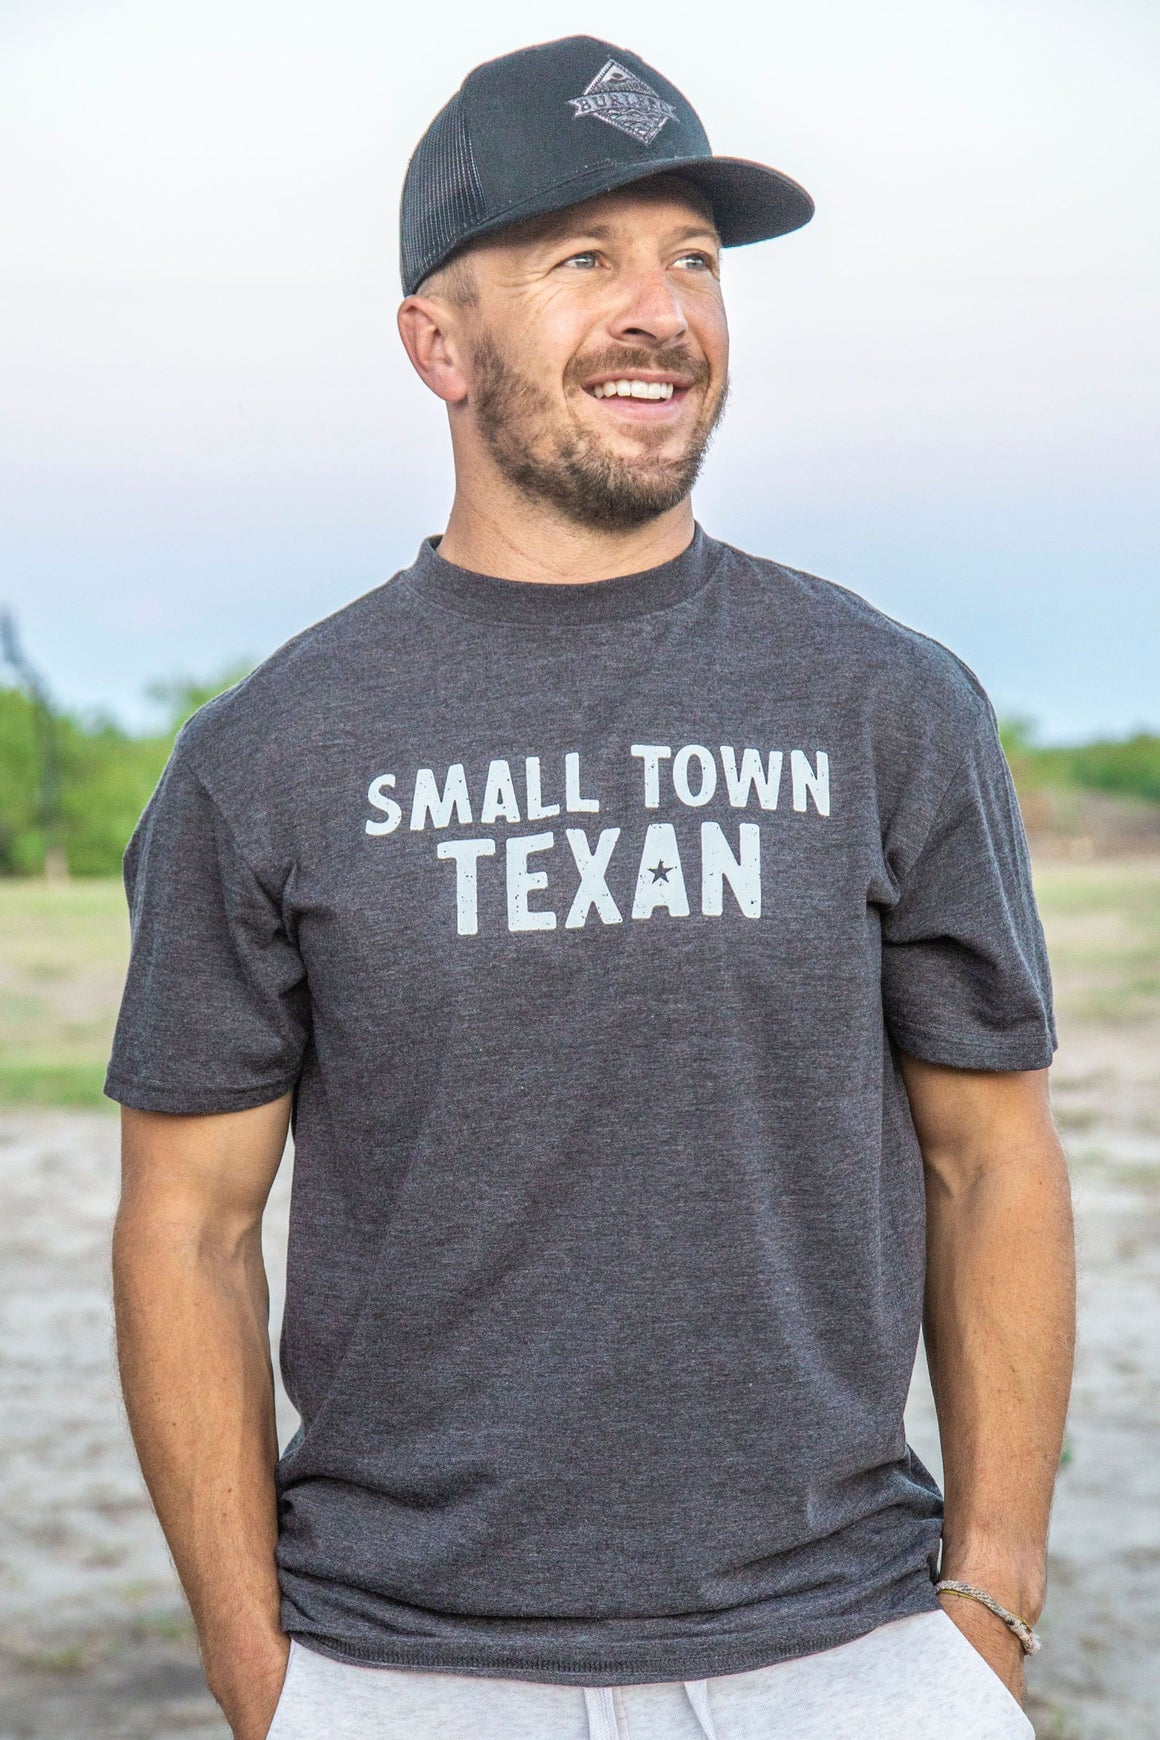 Small Town Texan